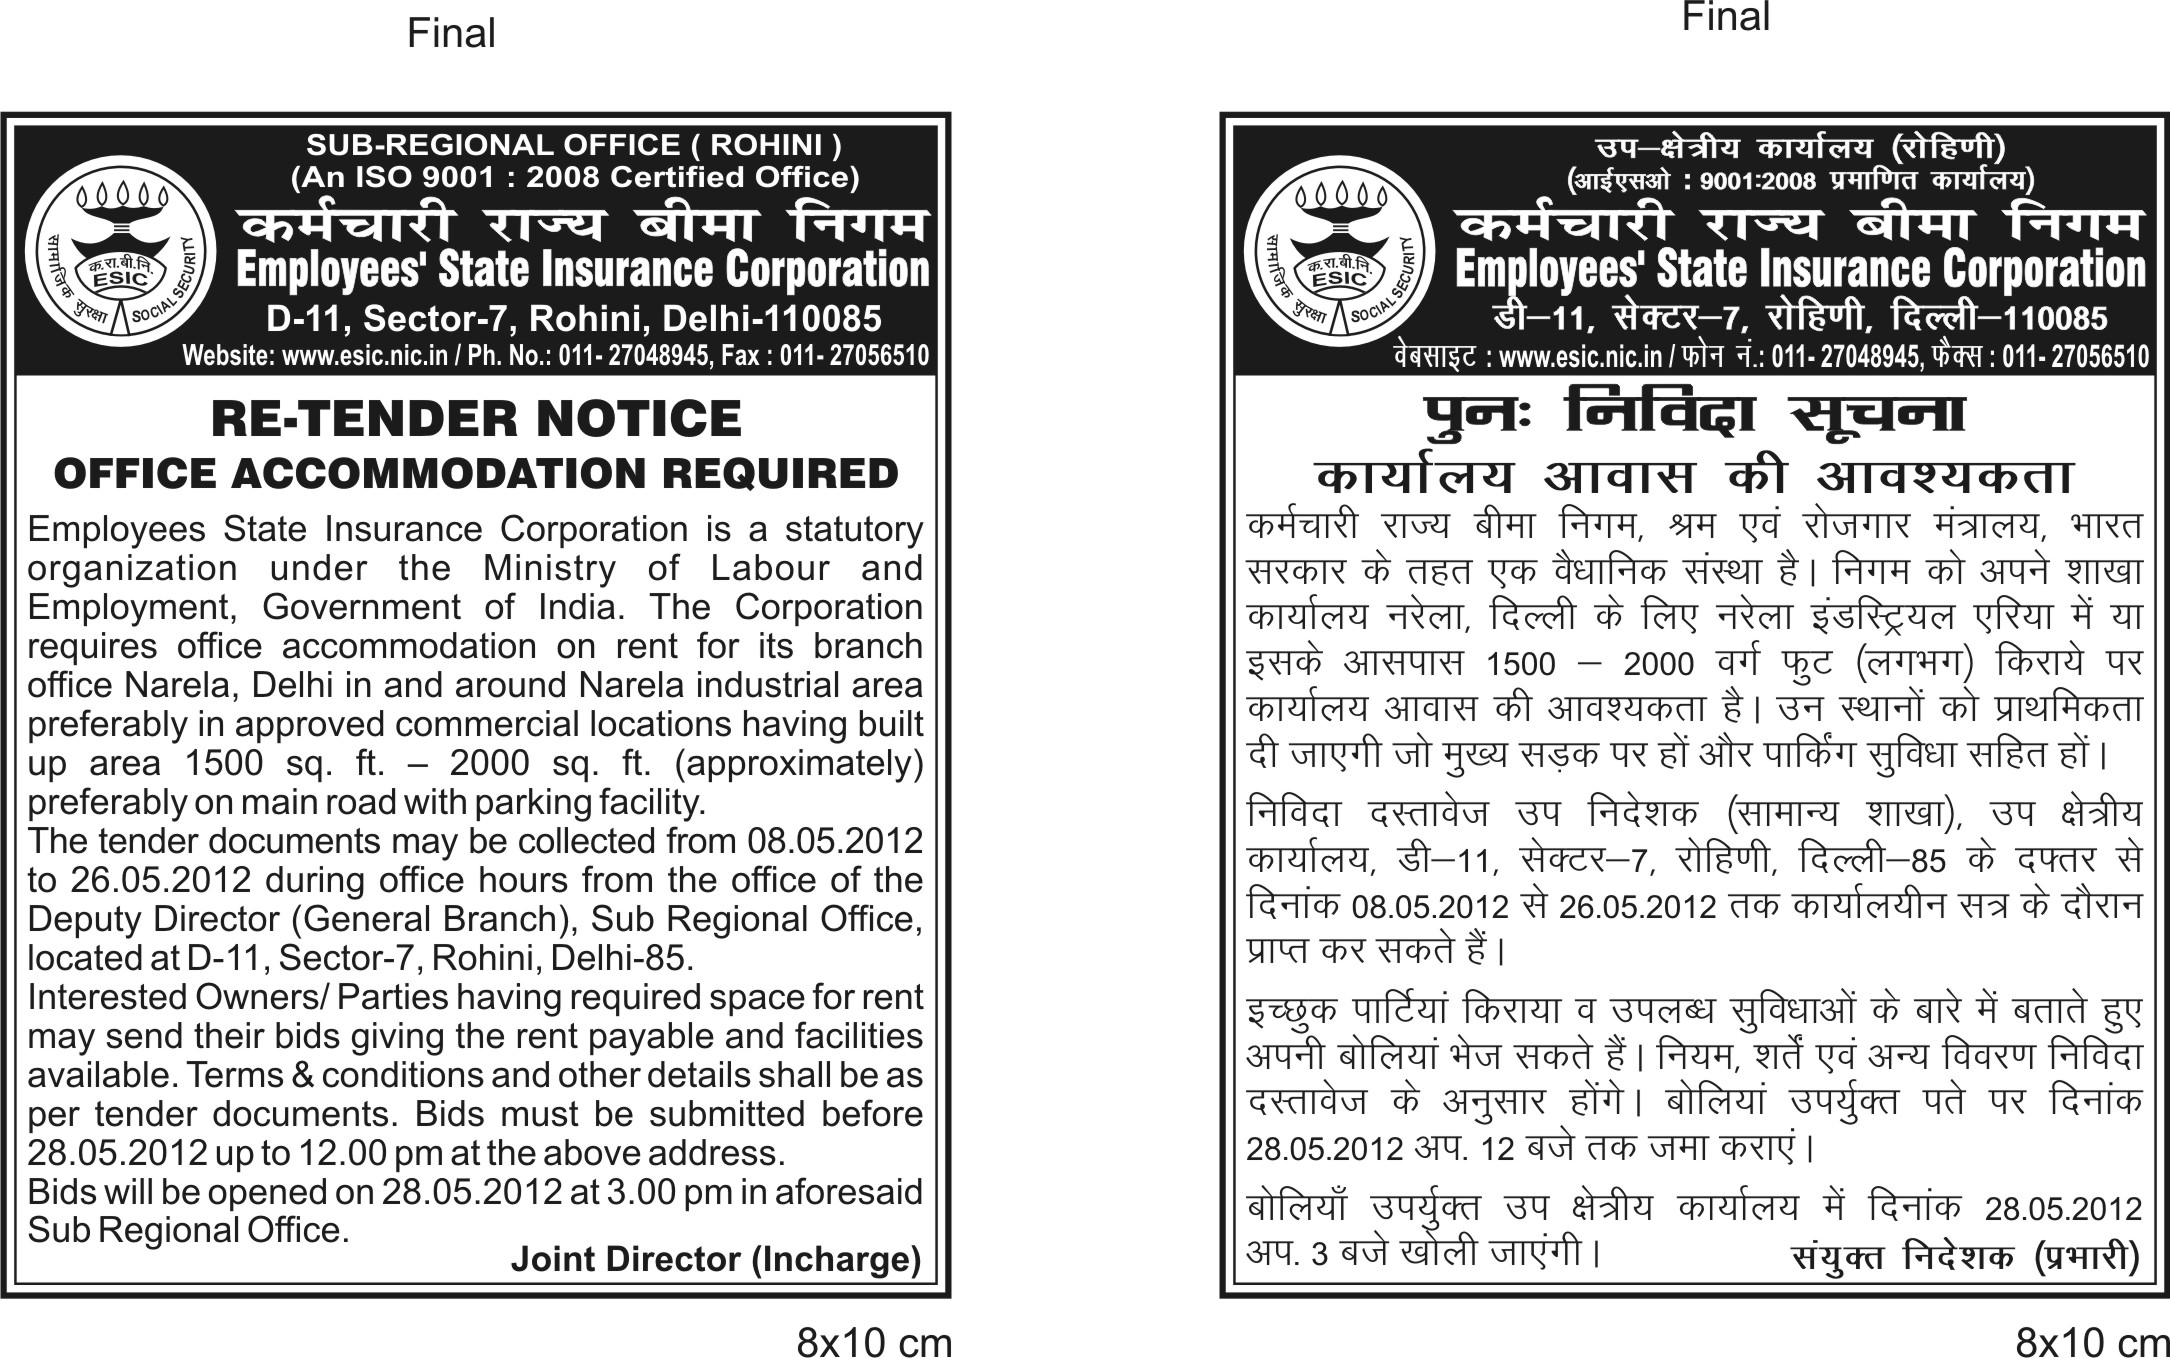 Tender 2012 | Employee's State Insurance Corporation, Ministry of